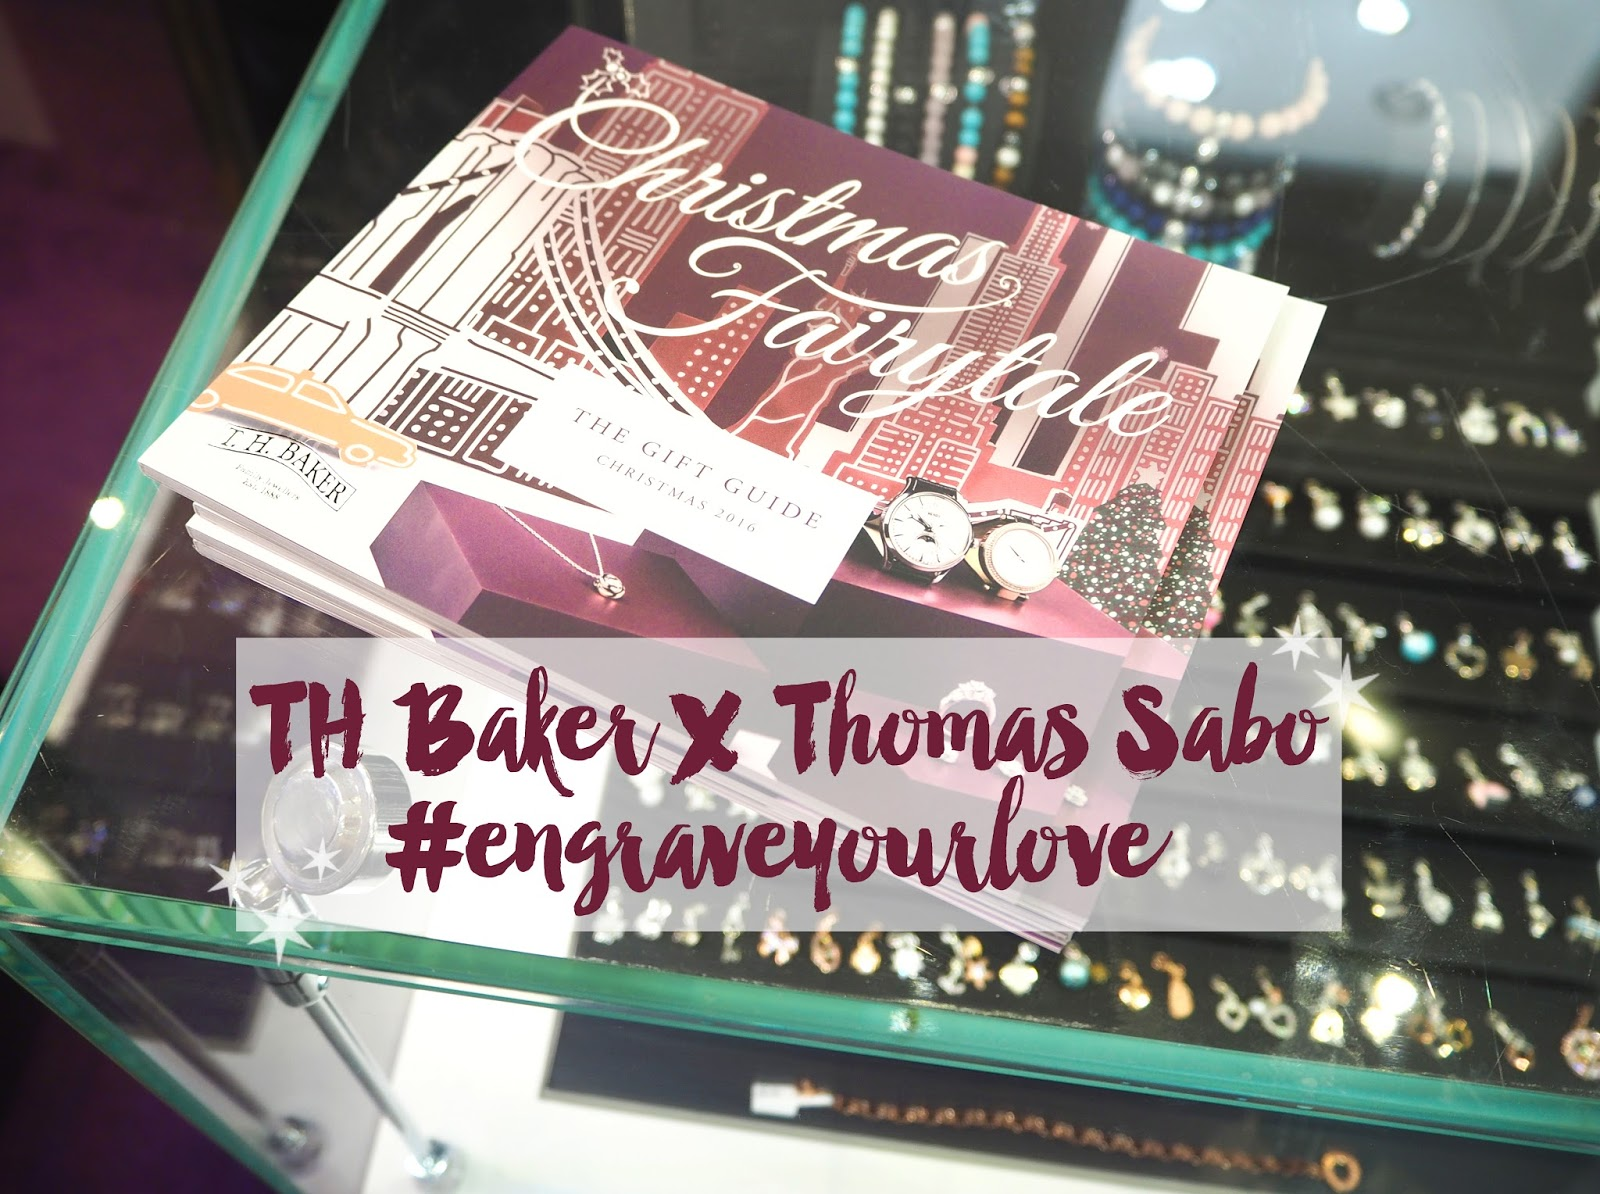 TH Baker X Thomas Sabo Engraved Jewellery, Katie Kirk Loves, #engraveyourlove, Blogger Event, Goodie Bag, Brighton, Thomas Sabo, Jewellery